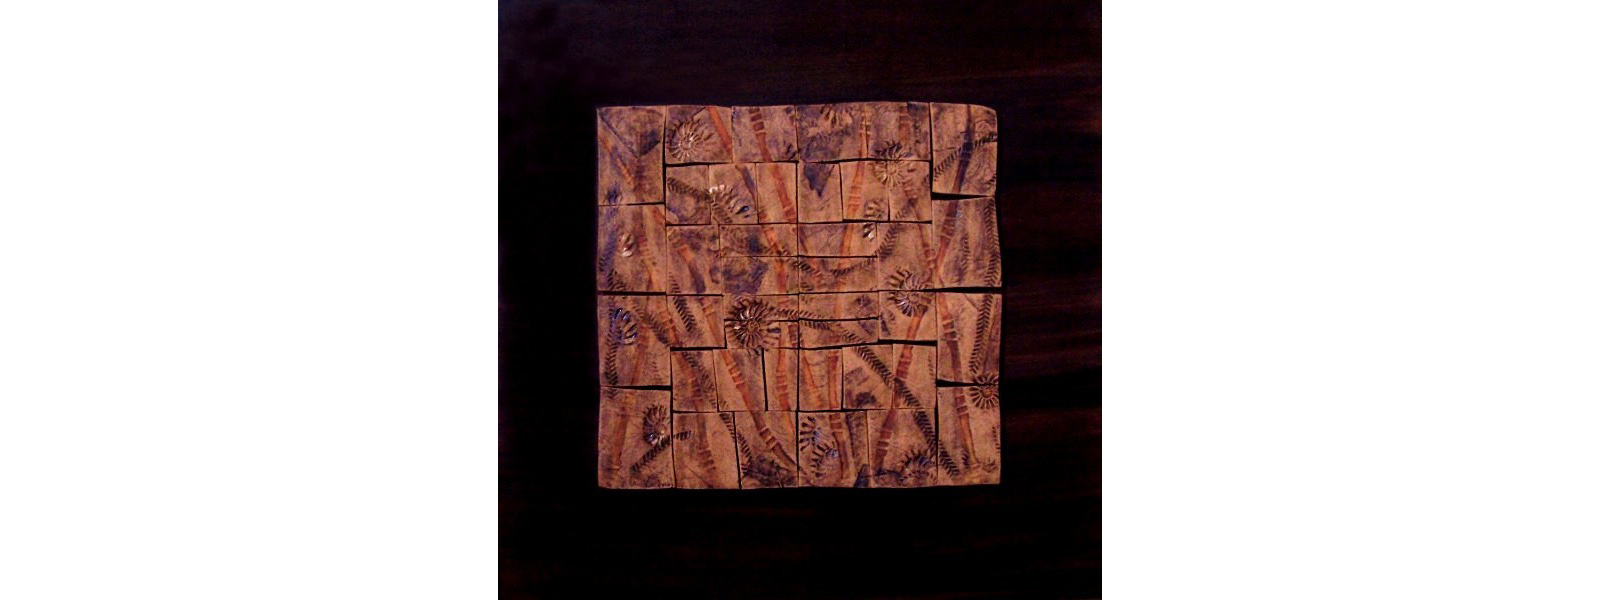 "This Square home decor wall art made of Stoneware tiles on polychrome plywood by an American Artist Ana Caravias,  24"" x 24"""